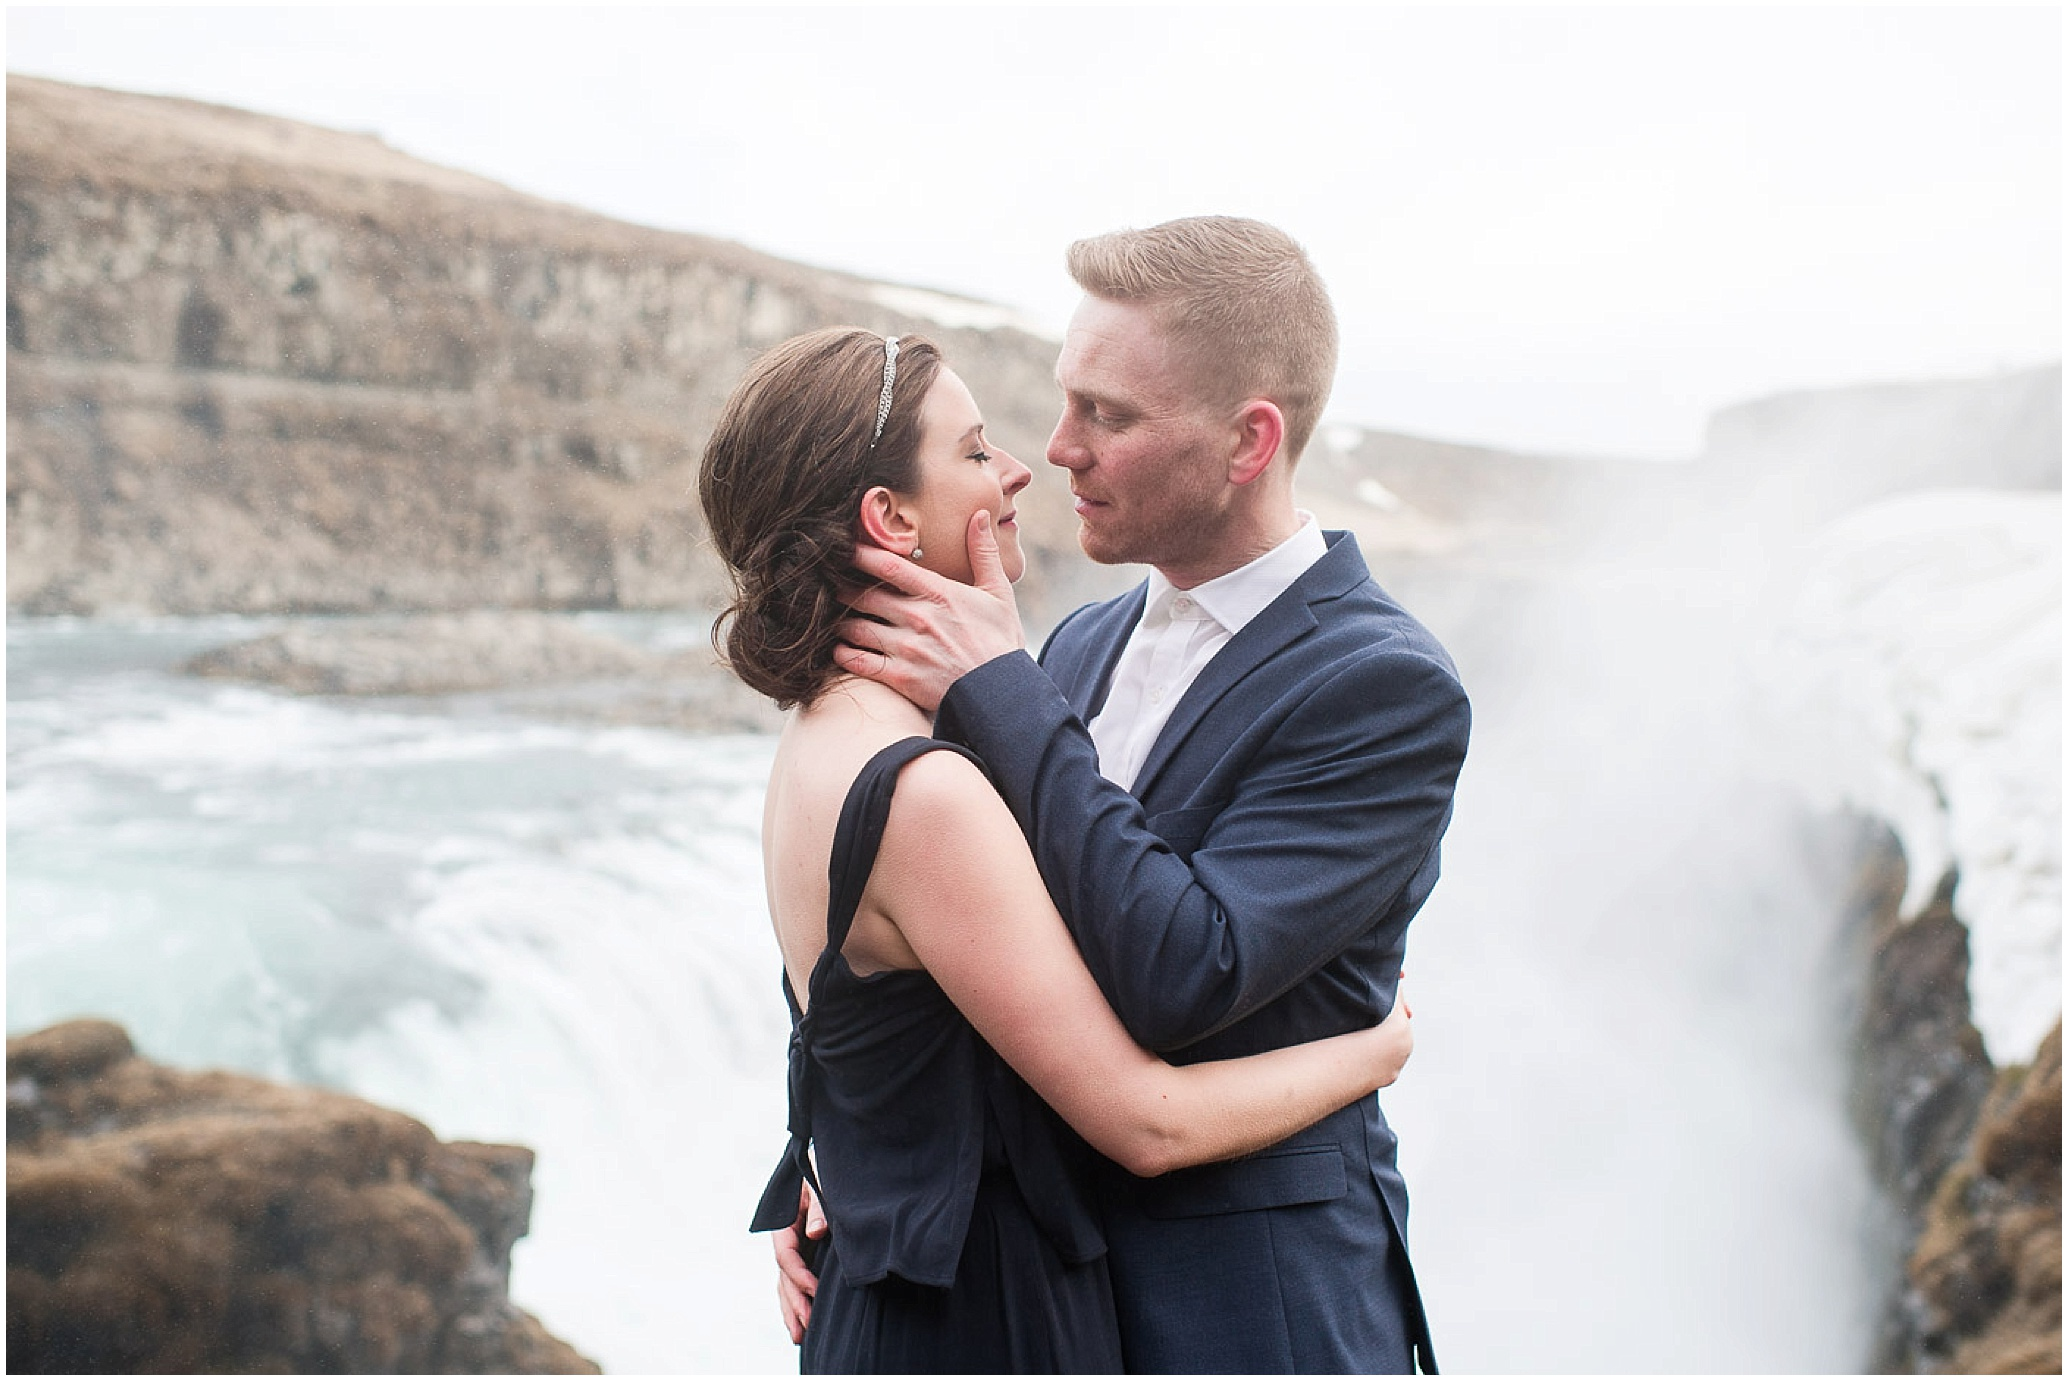 Hannah Leigh Photography Iceland Elopement Photographer_0132.jpg